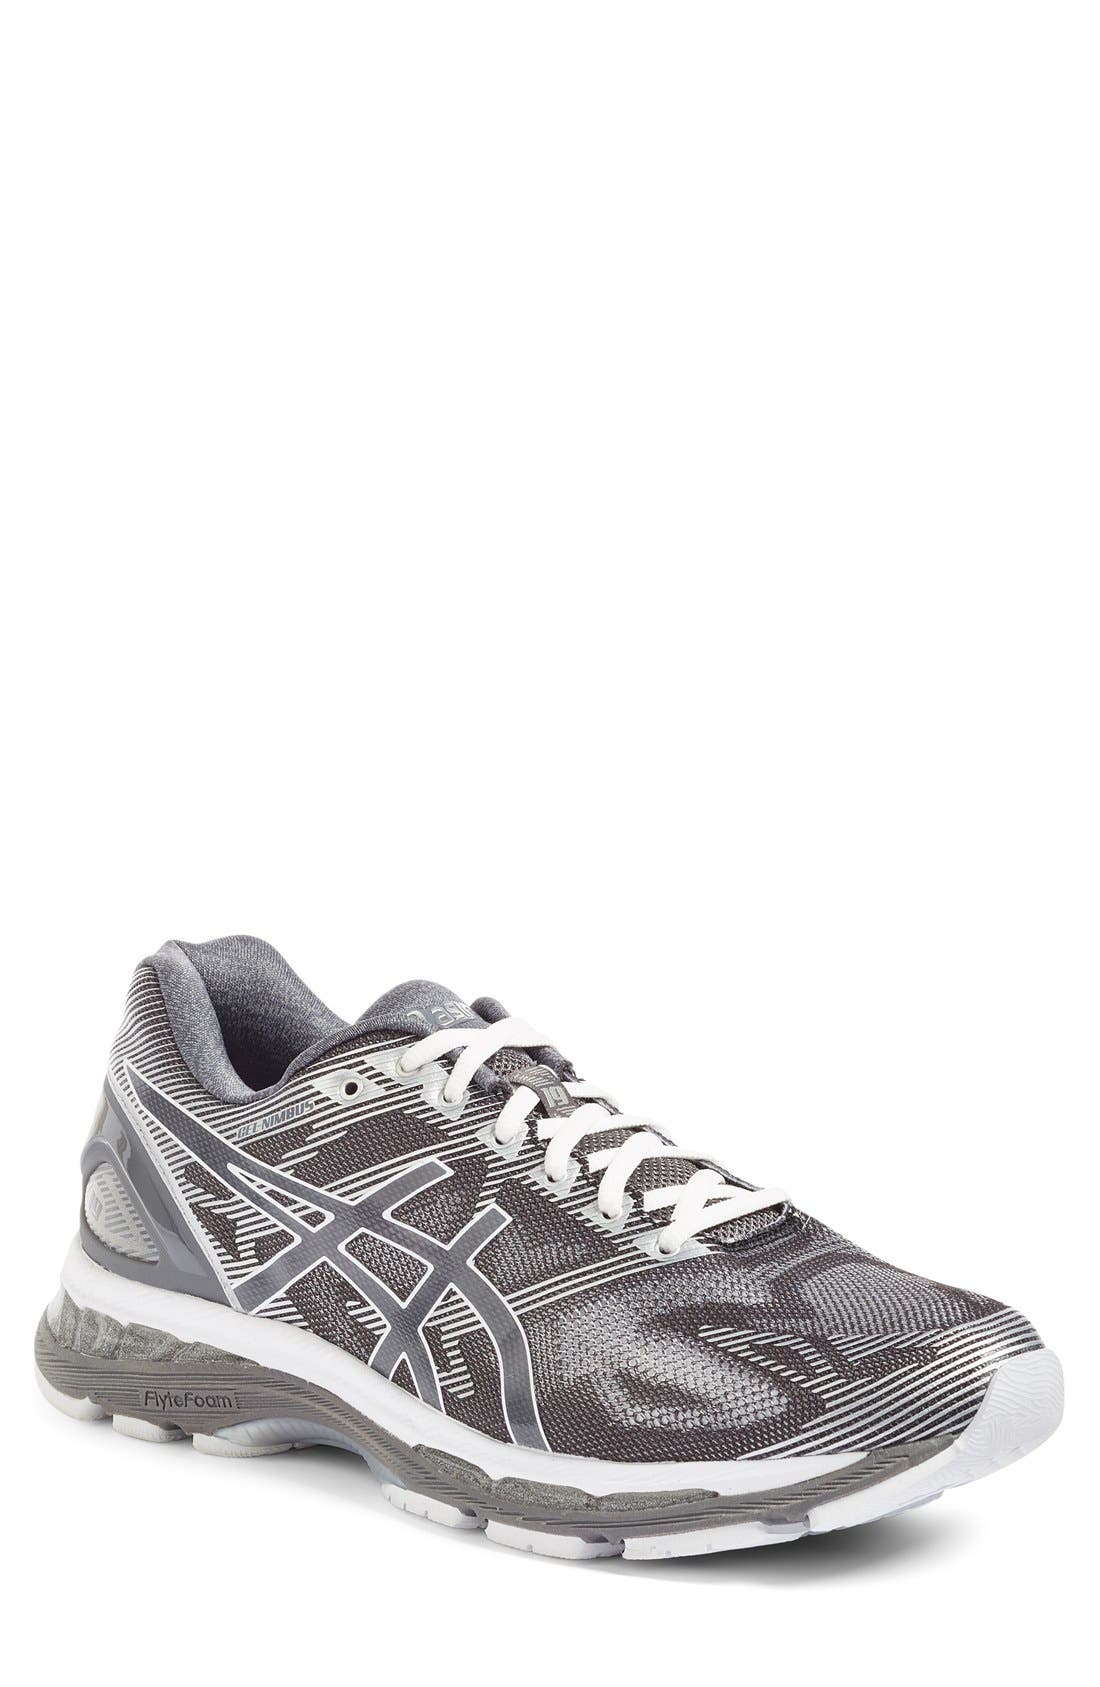 ASICS® GEL®-Nimbus 19 Running Shoe (Men) (Regular Retail Price: $159.95)